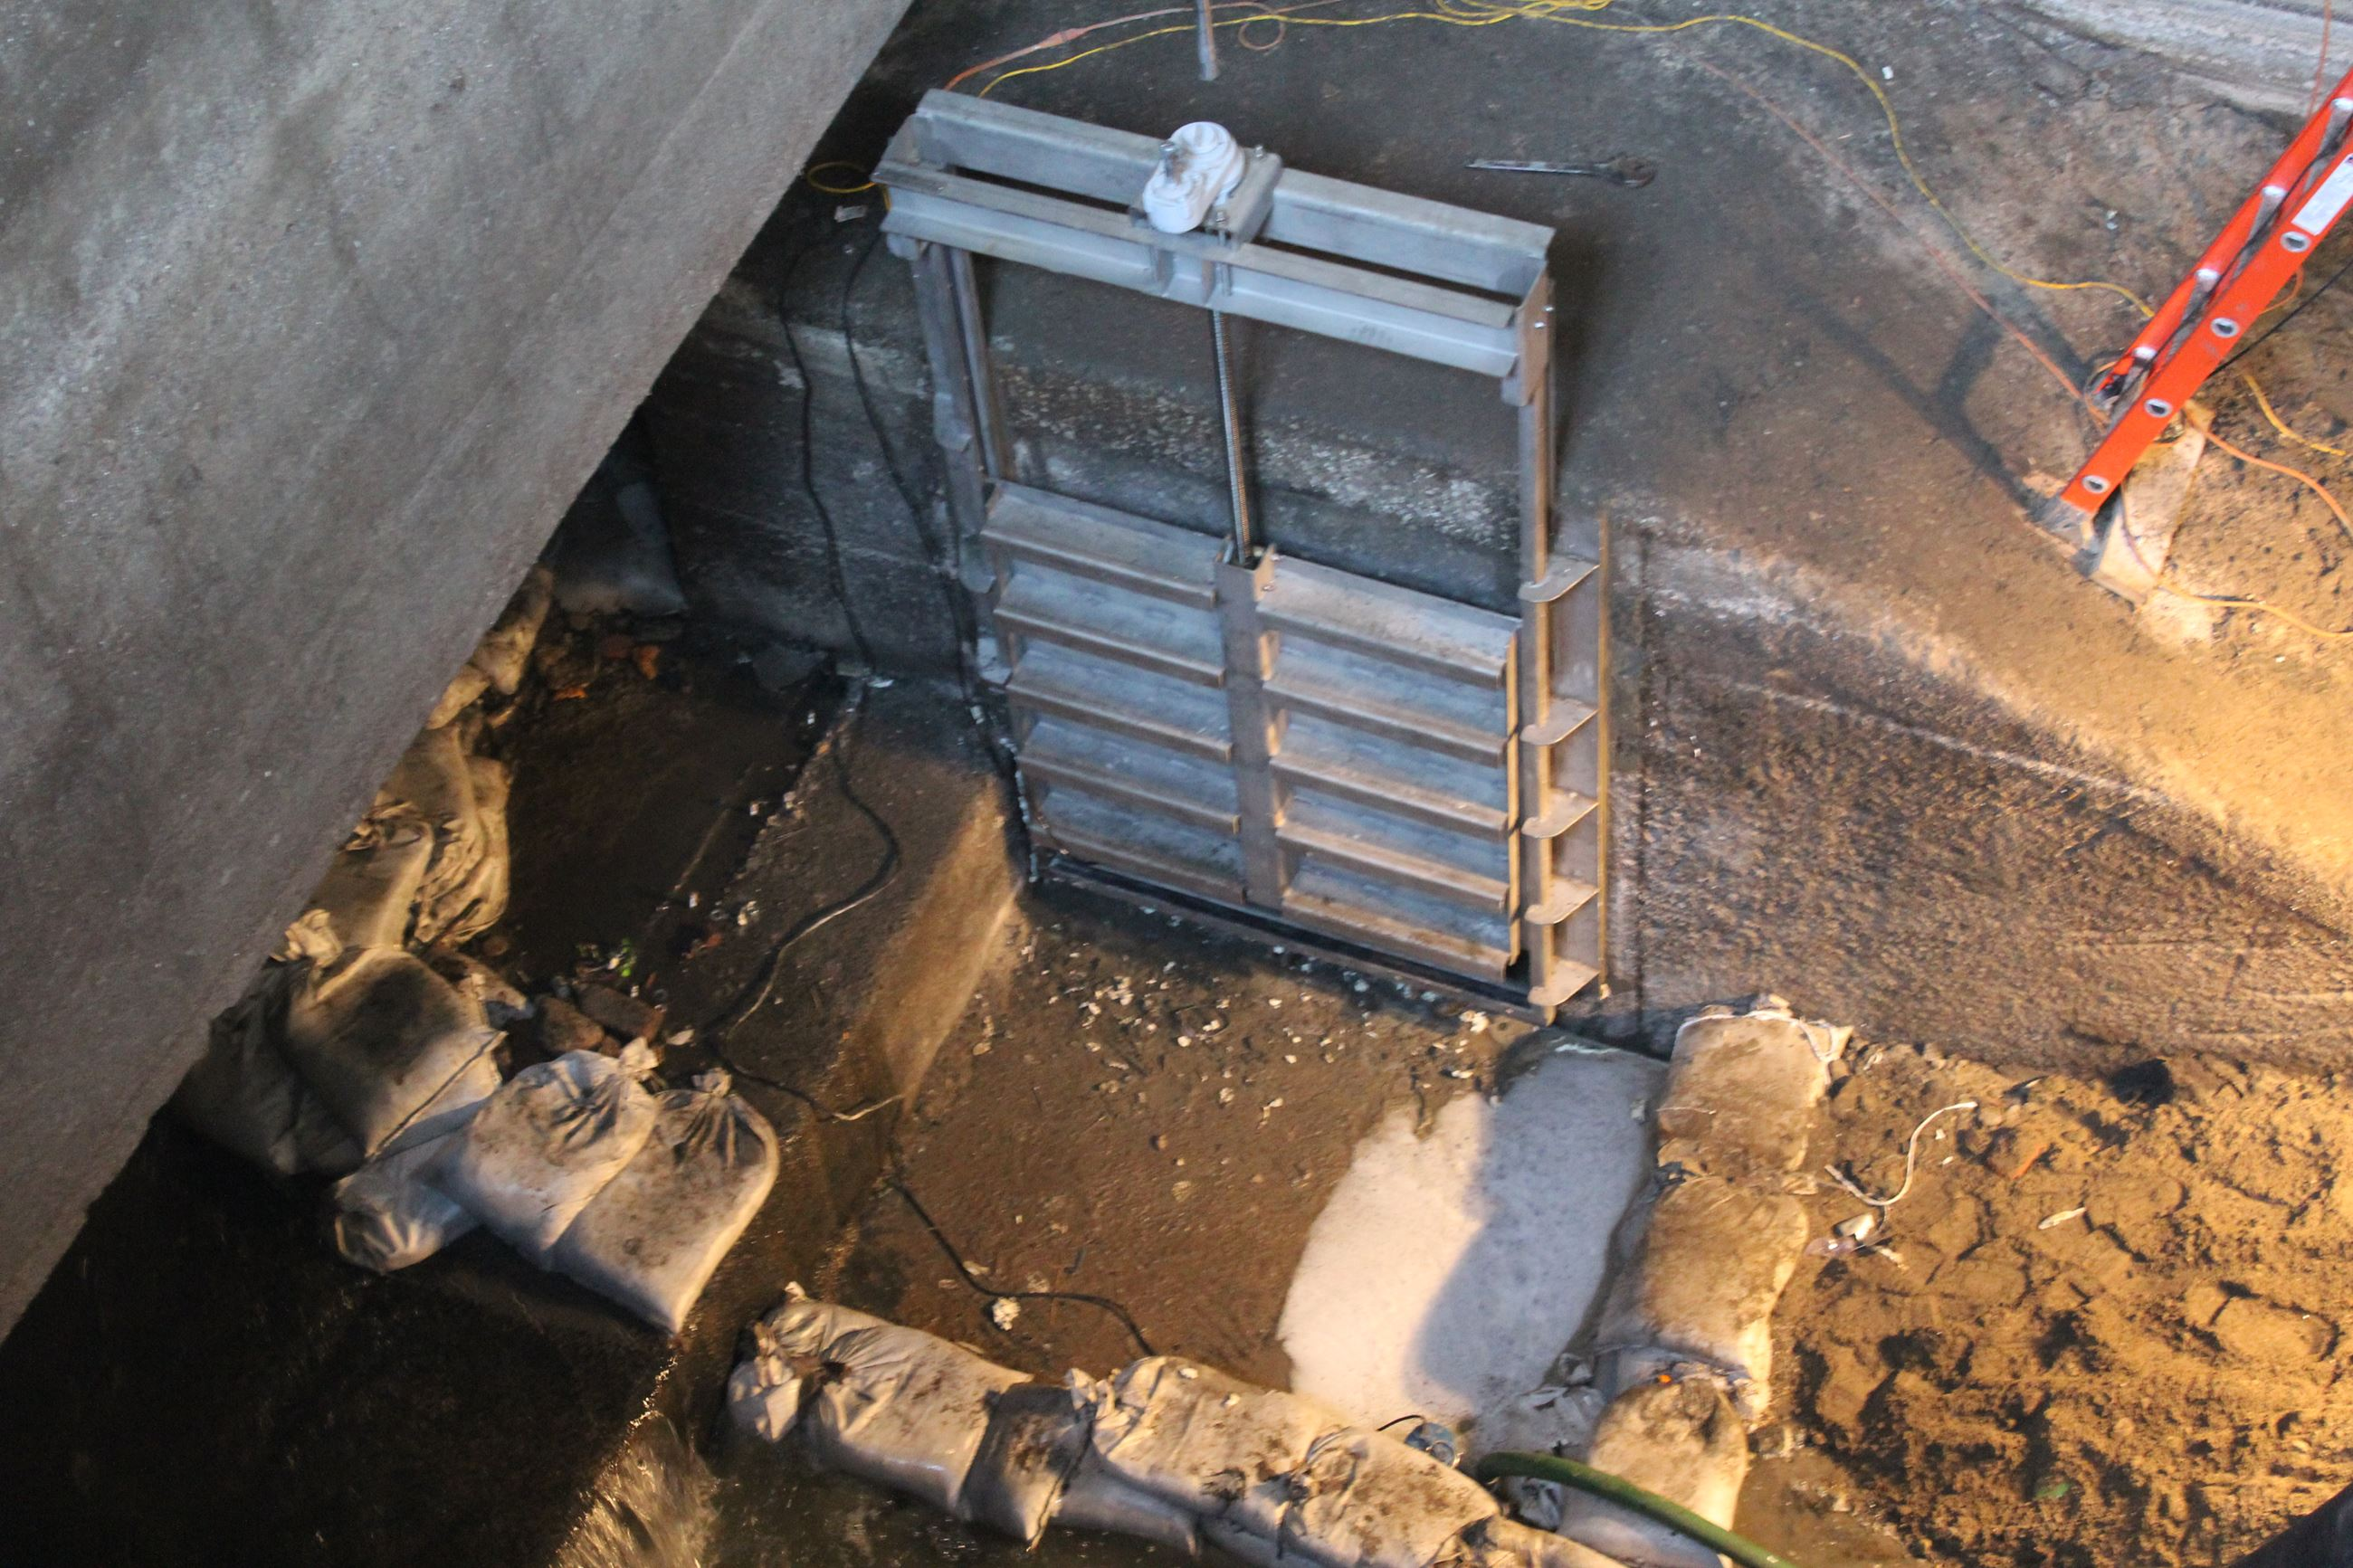 030921 Papoose Creek LIft Station - new sluice gate installed (JPG)